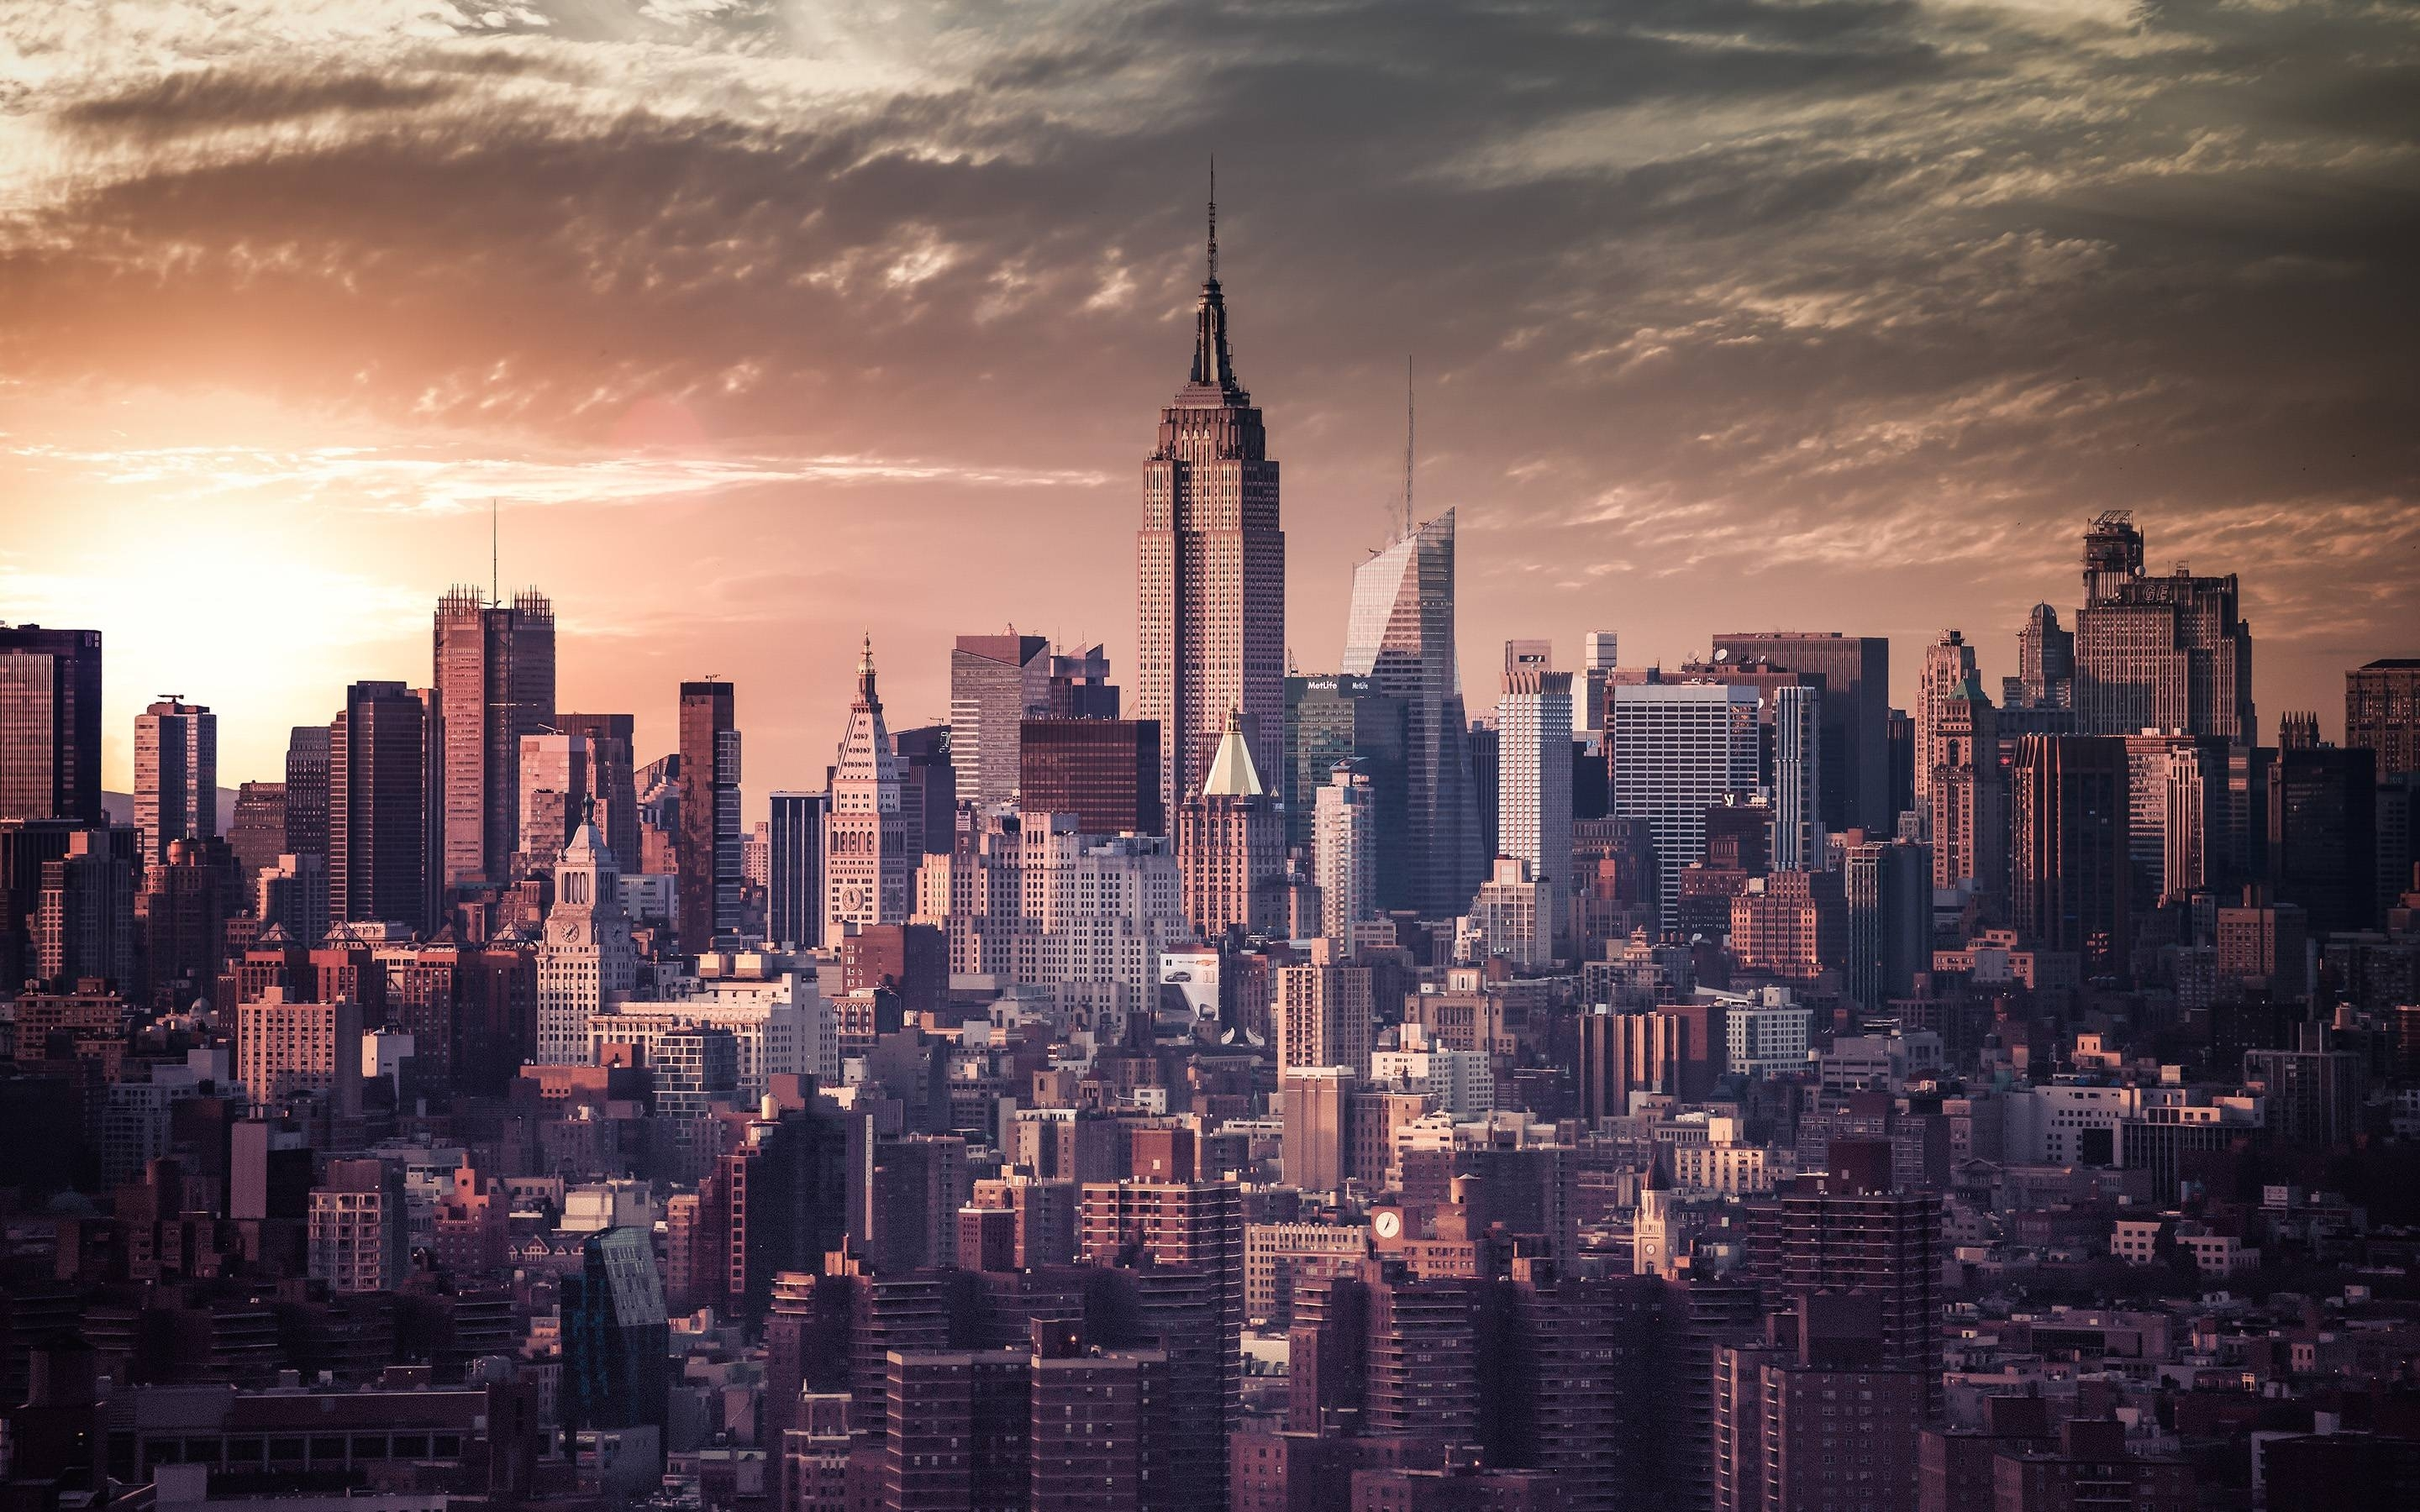 new york city images wallpapers group (91+)